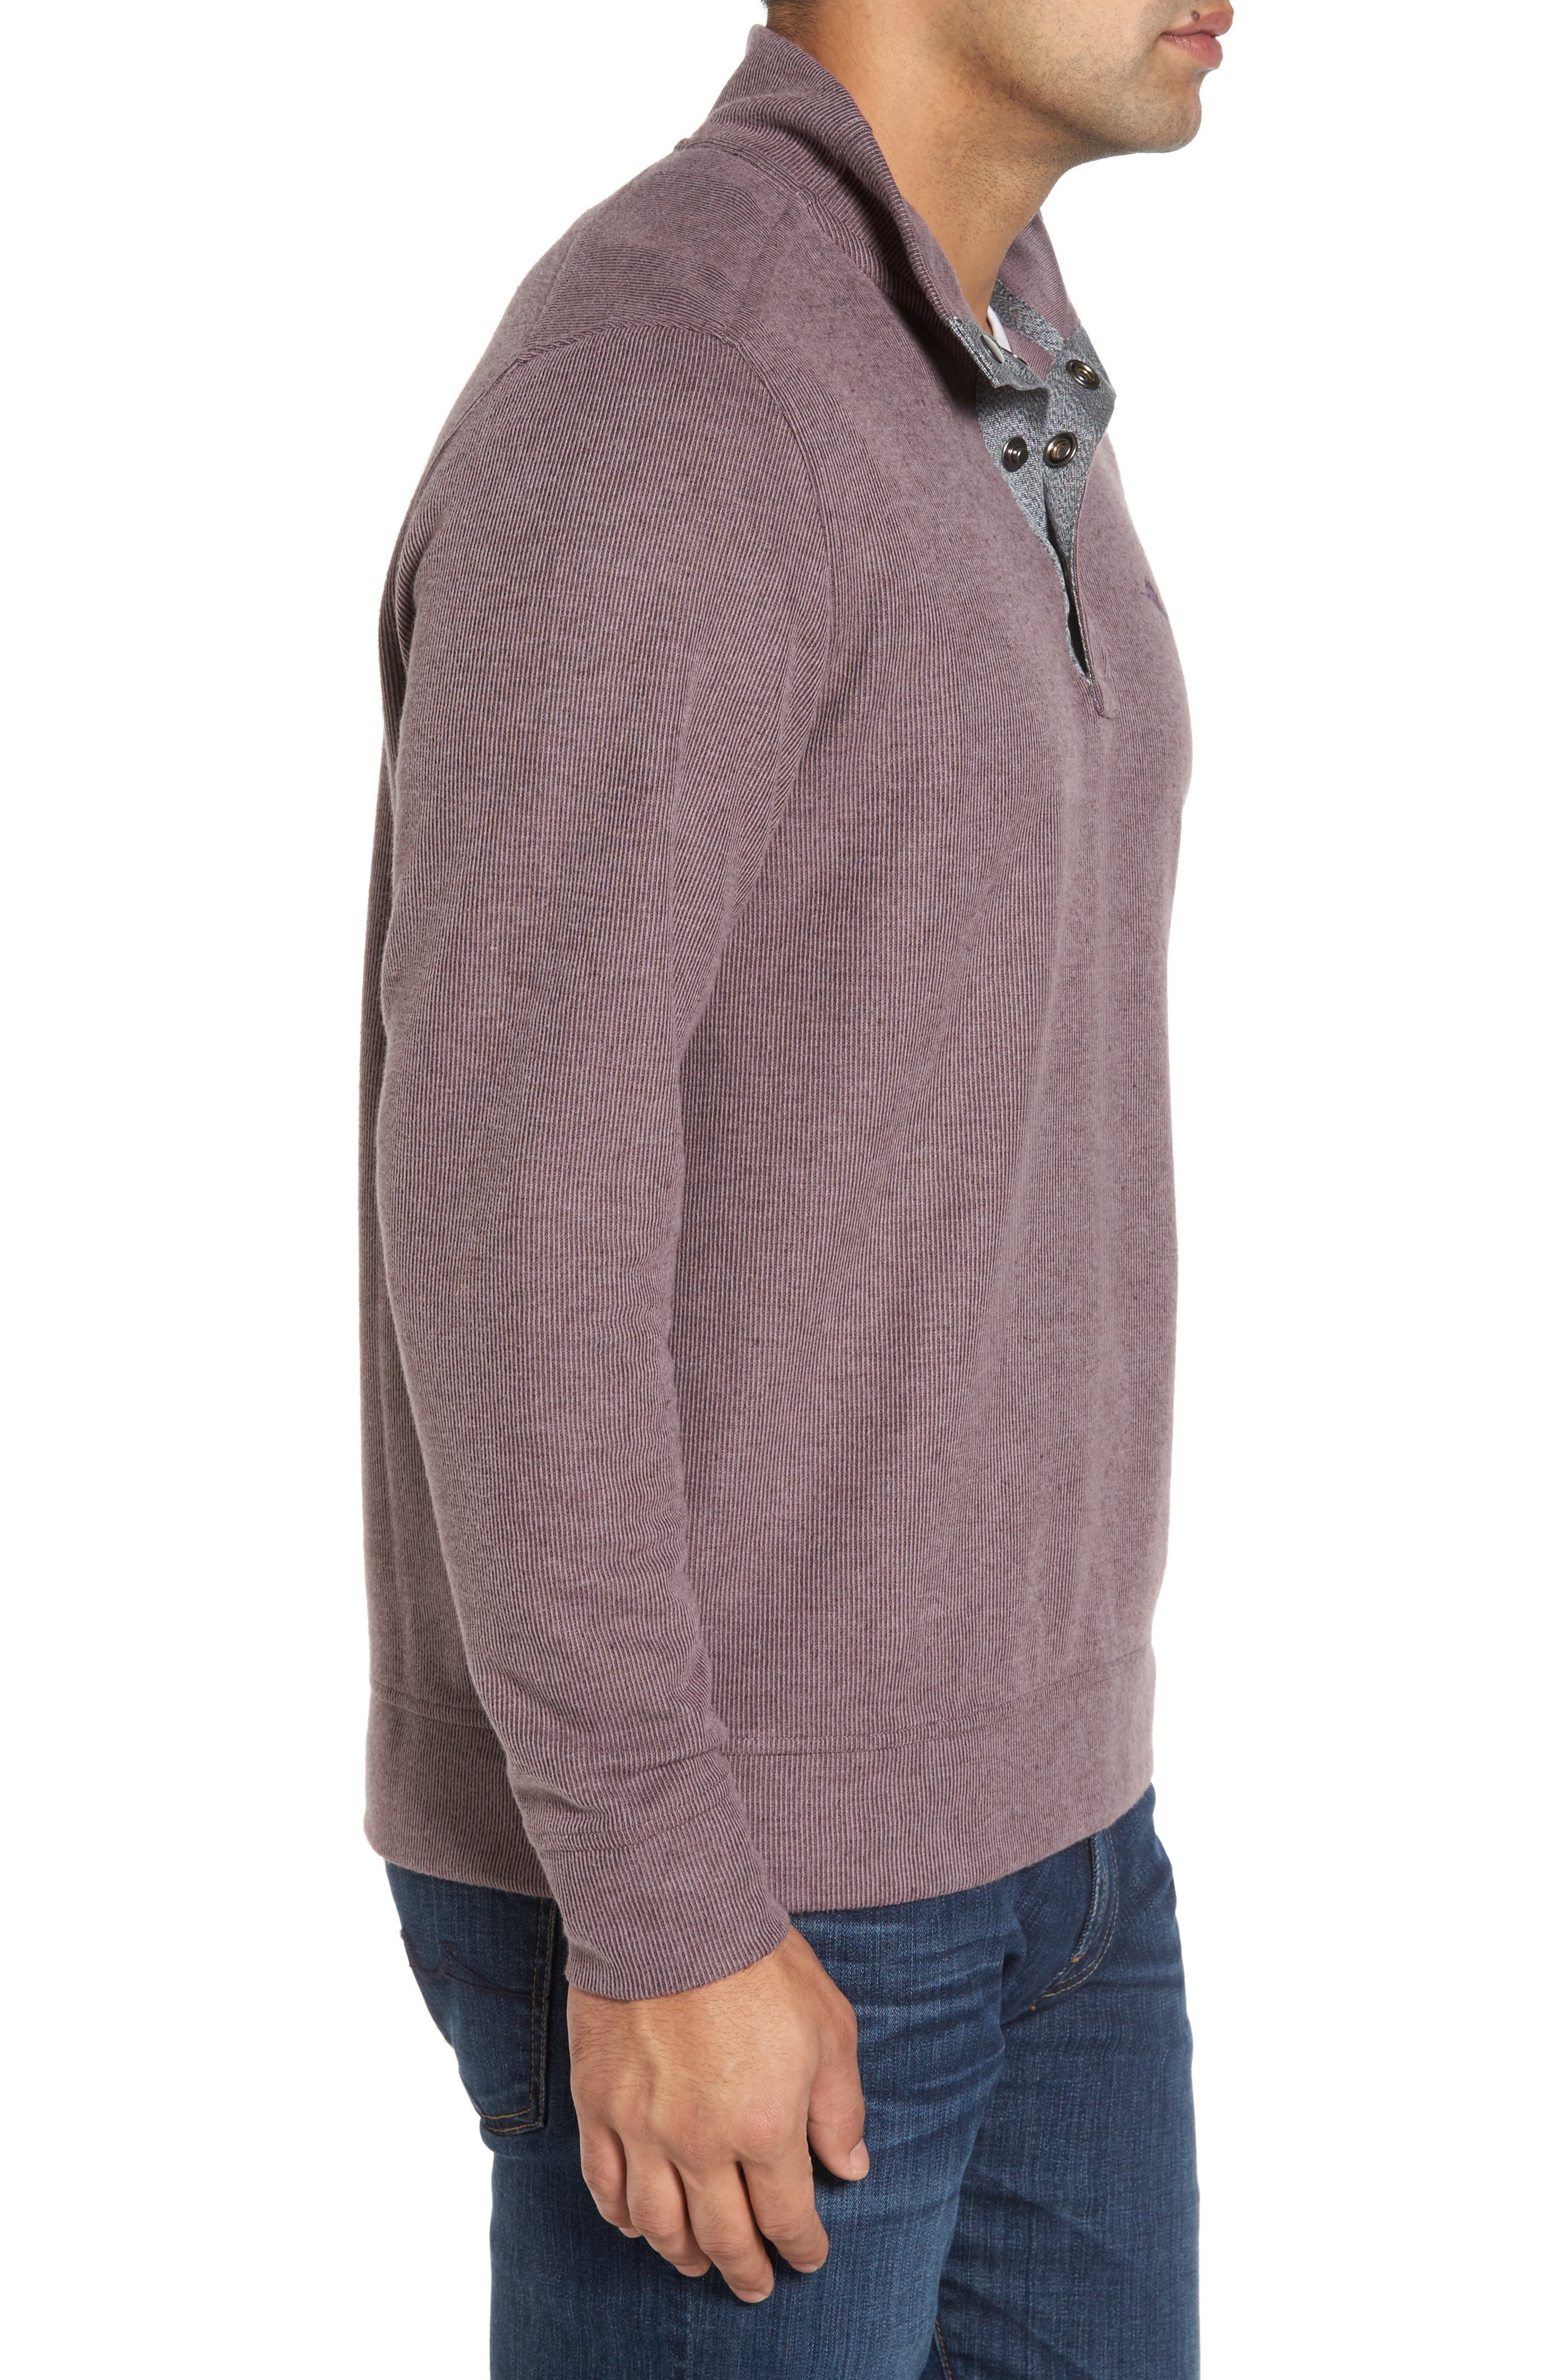 Cold Springs Snap Mock Neck Sweater,                             Alternate thumbnail 18, color,